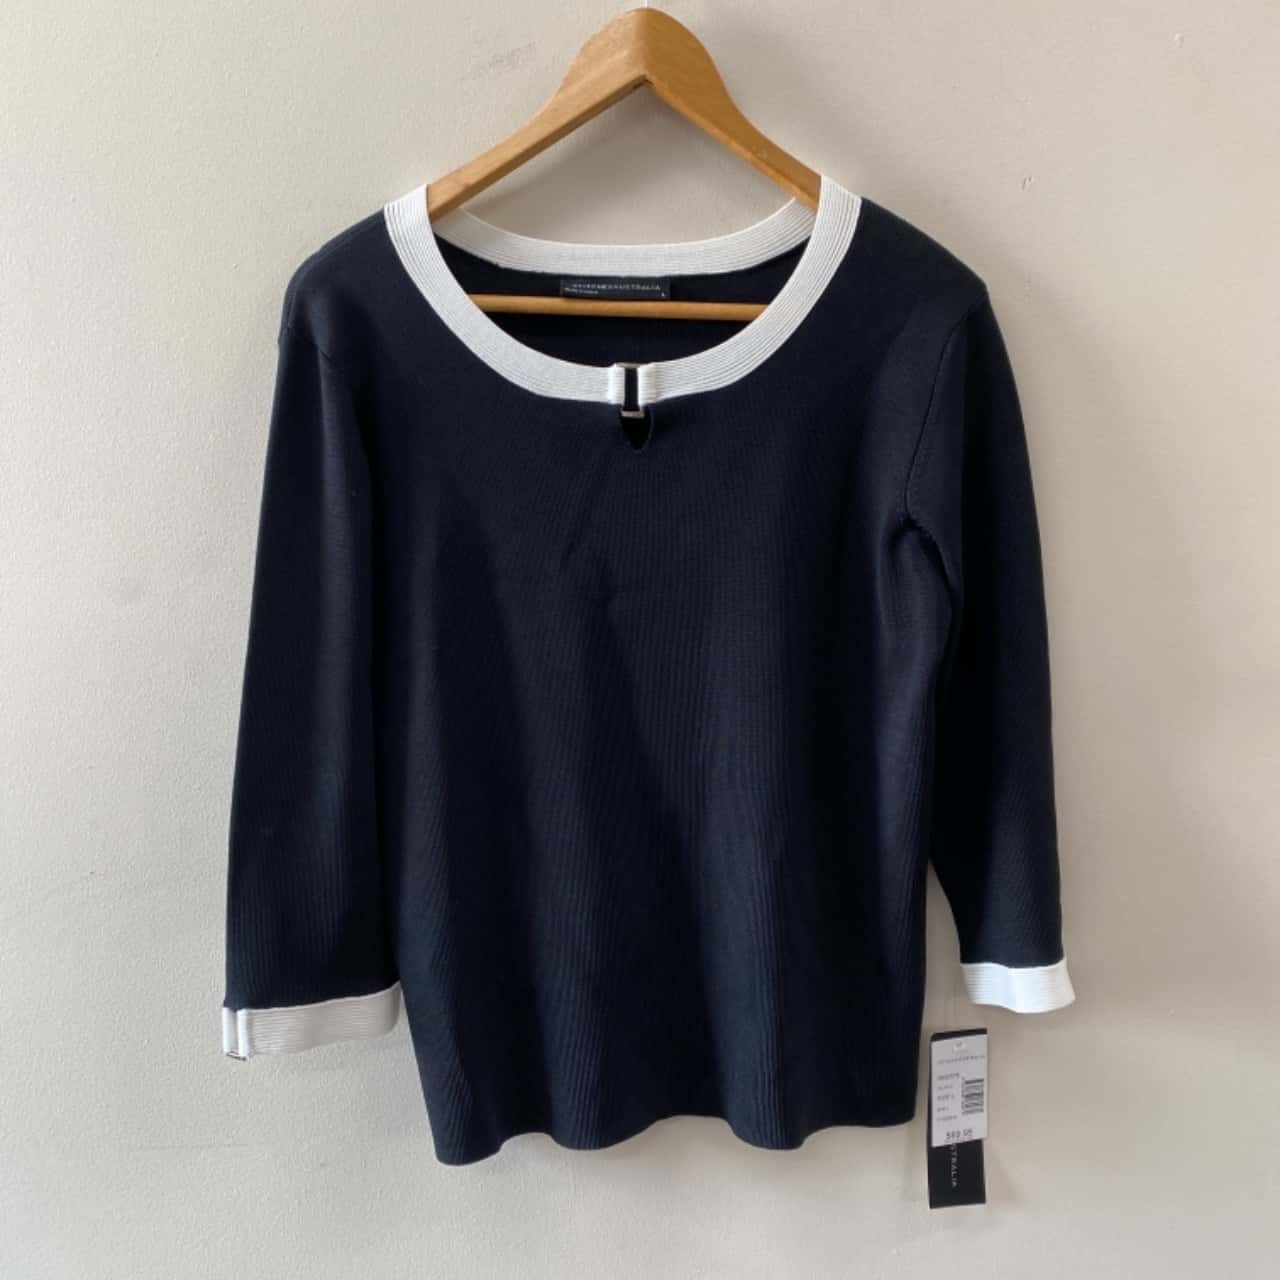 Stitches Australia Women's Size L Black Long Sleeve Top-New With Tags